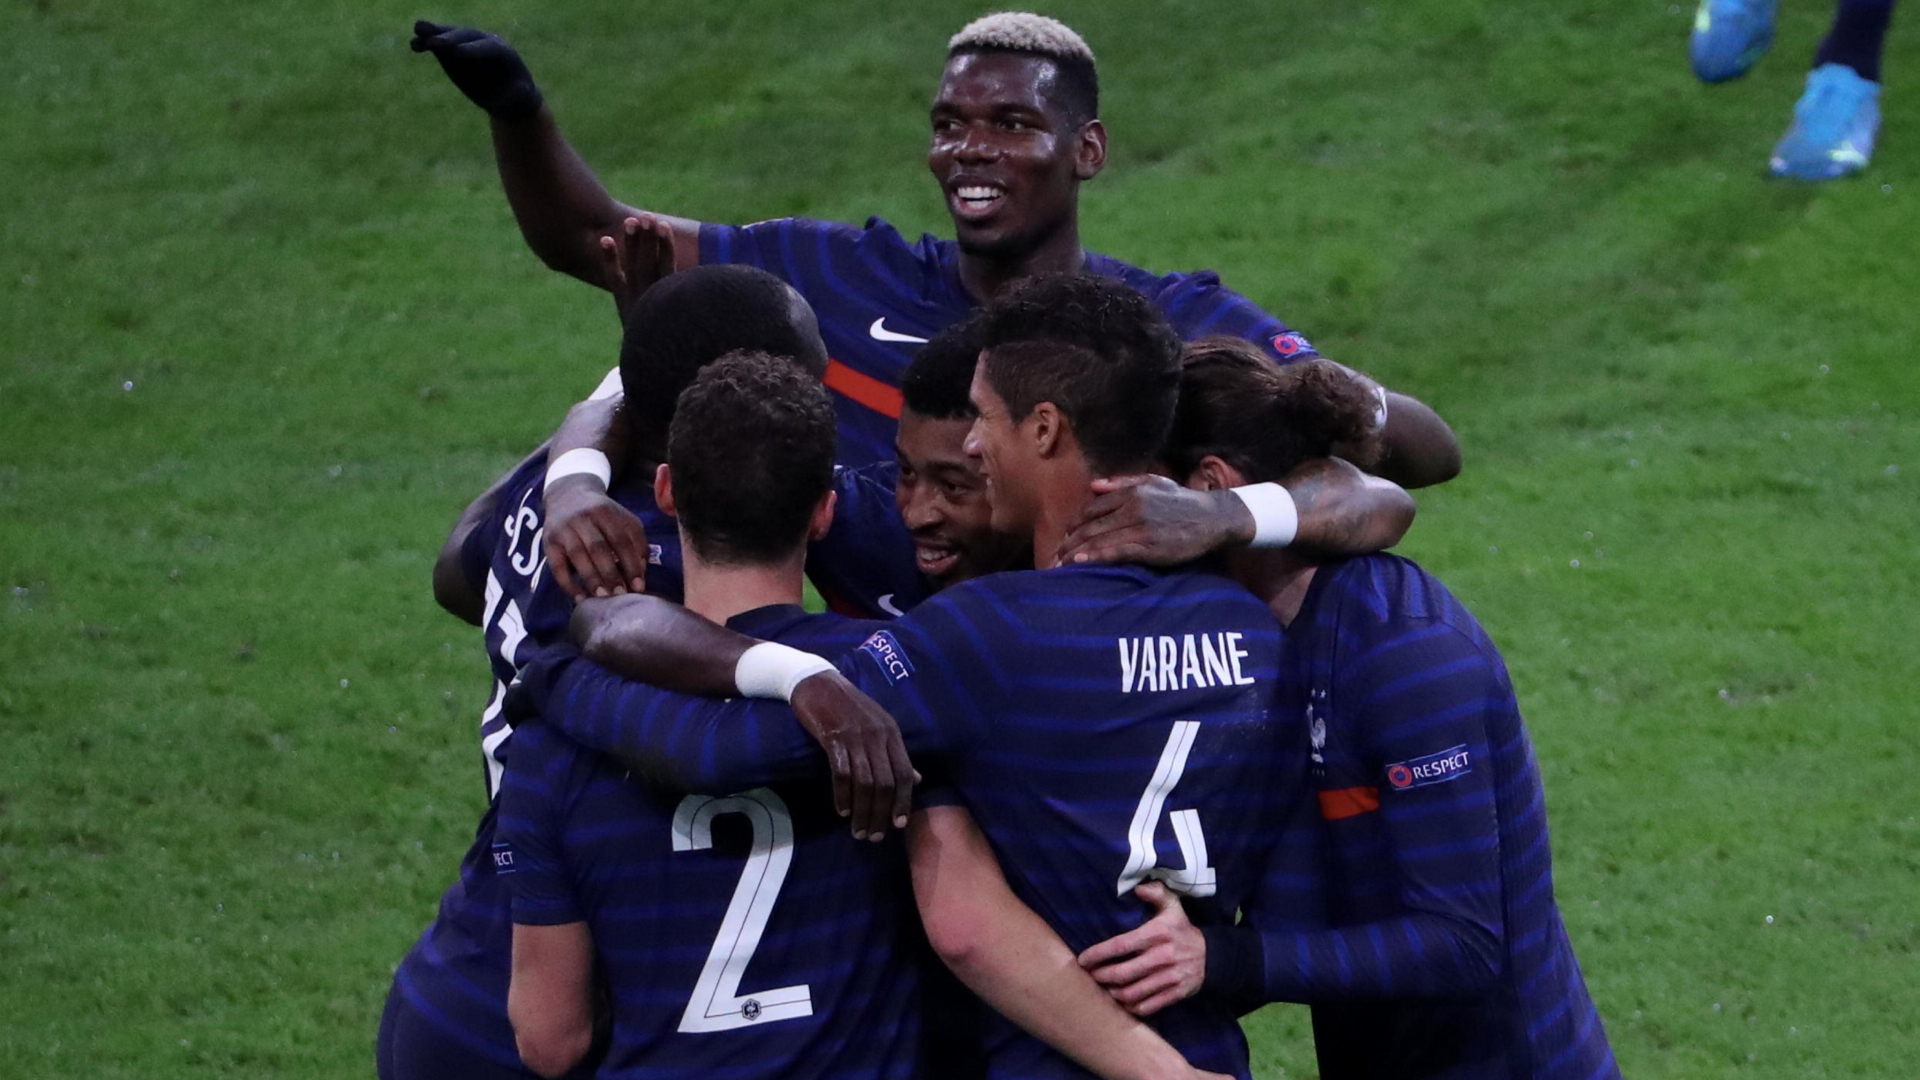 Deschamps hopes Pogba gets boost from France on Man Utd return